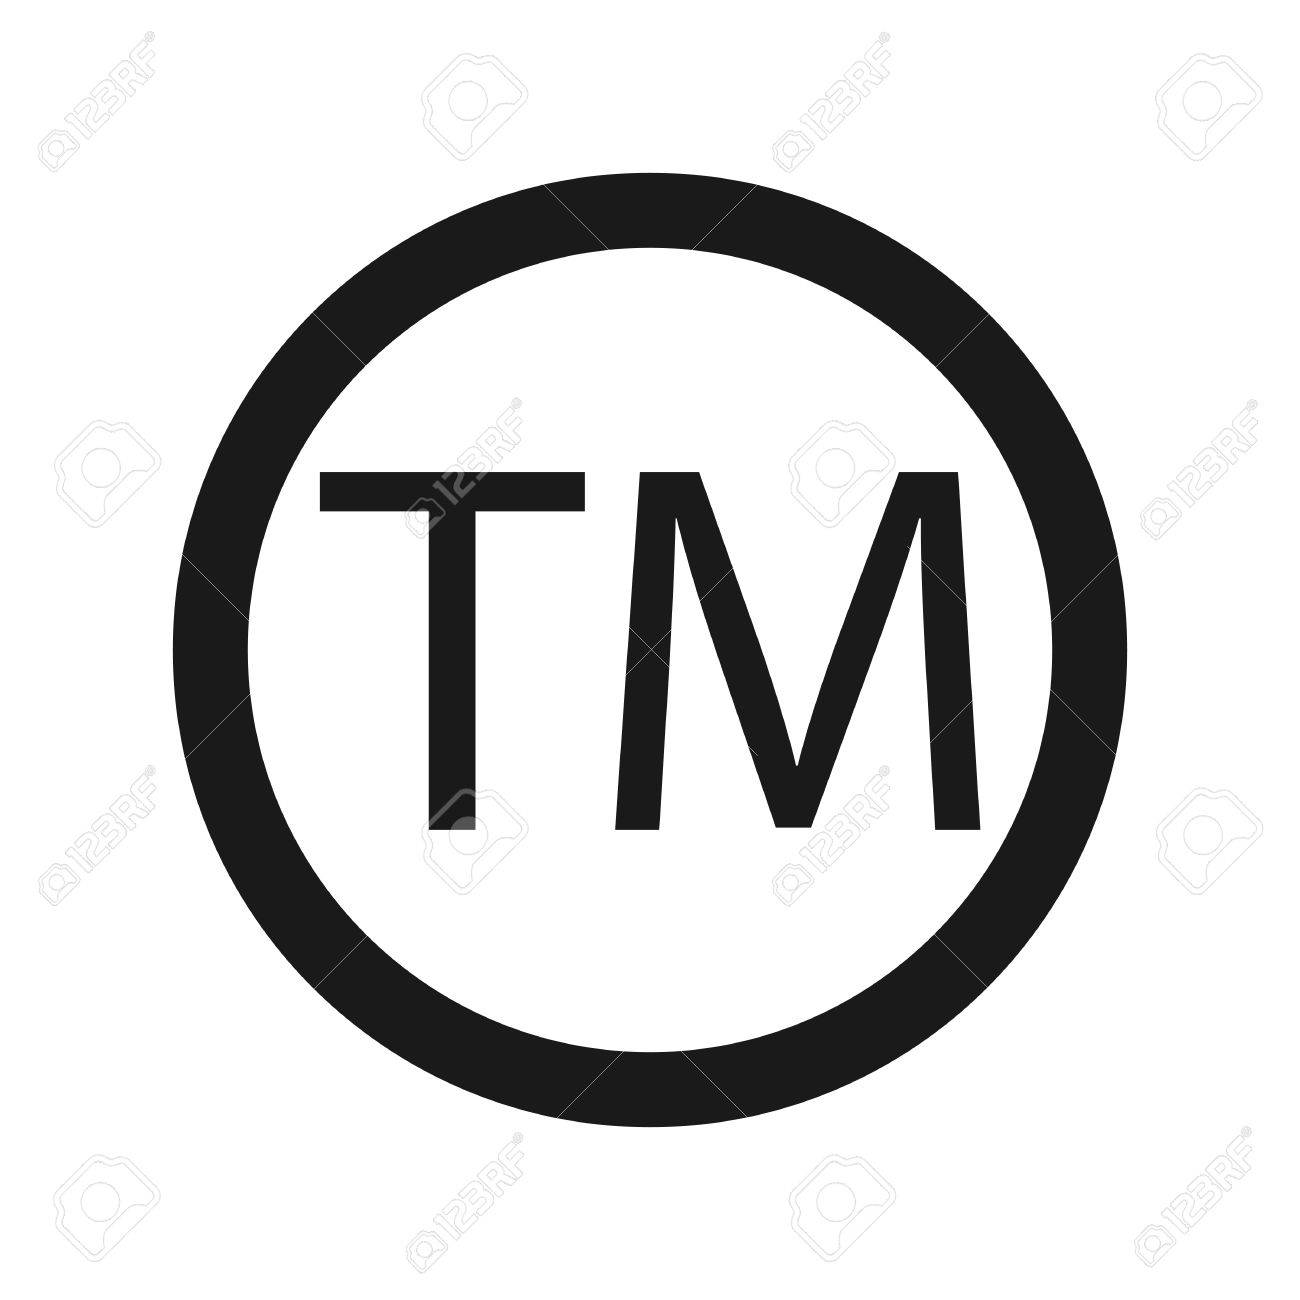 Trademark symbol icon tm royalty free cliparts vectors and stock trademark symbol icon tm stock vector 84873318 buycottarizona Gallery